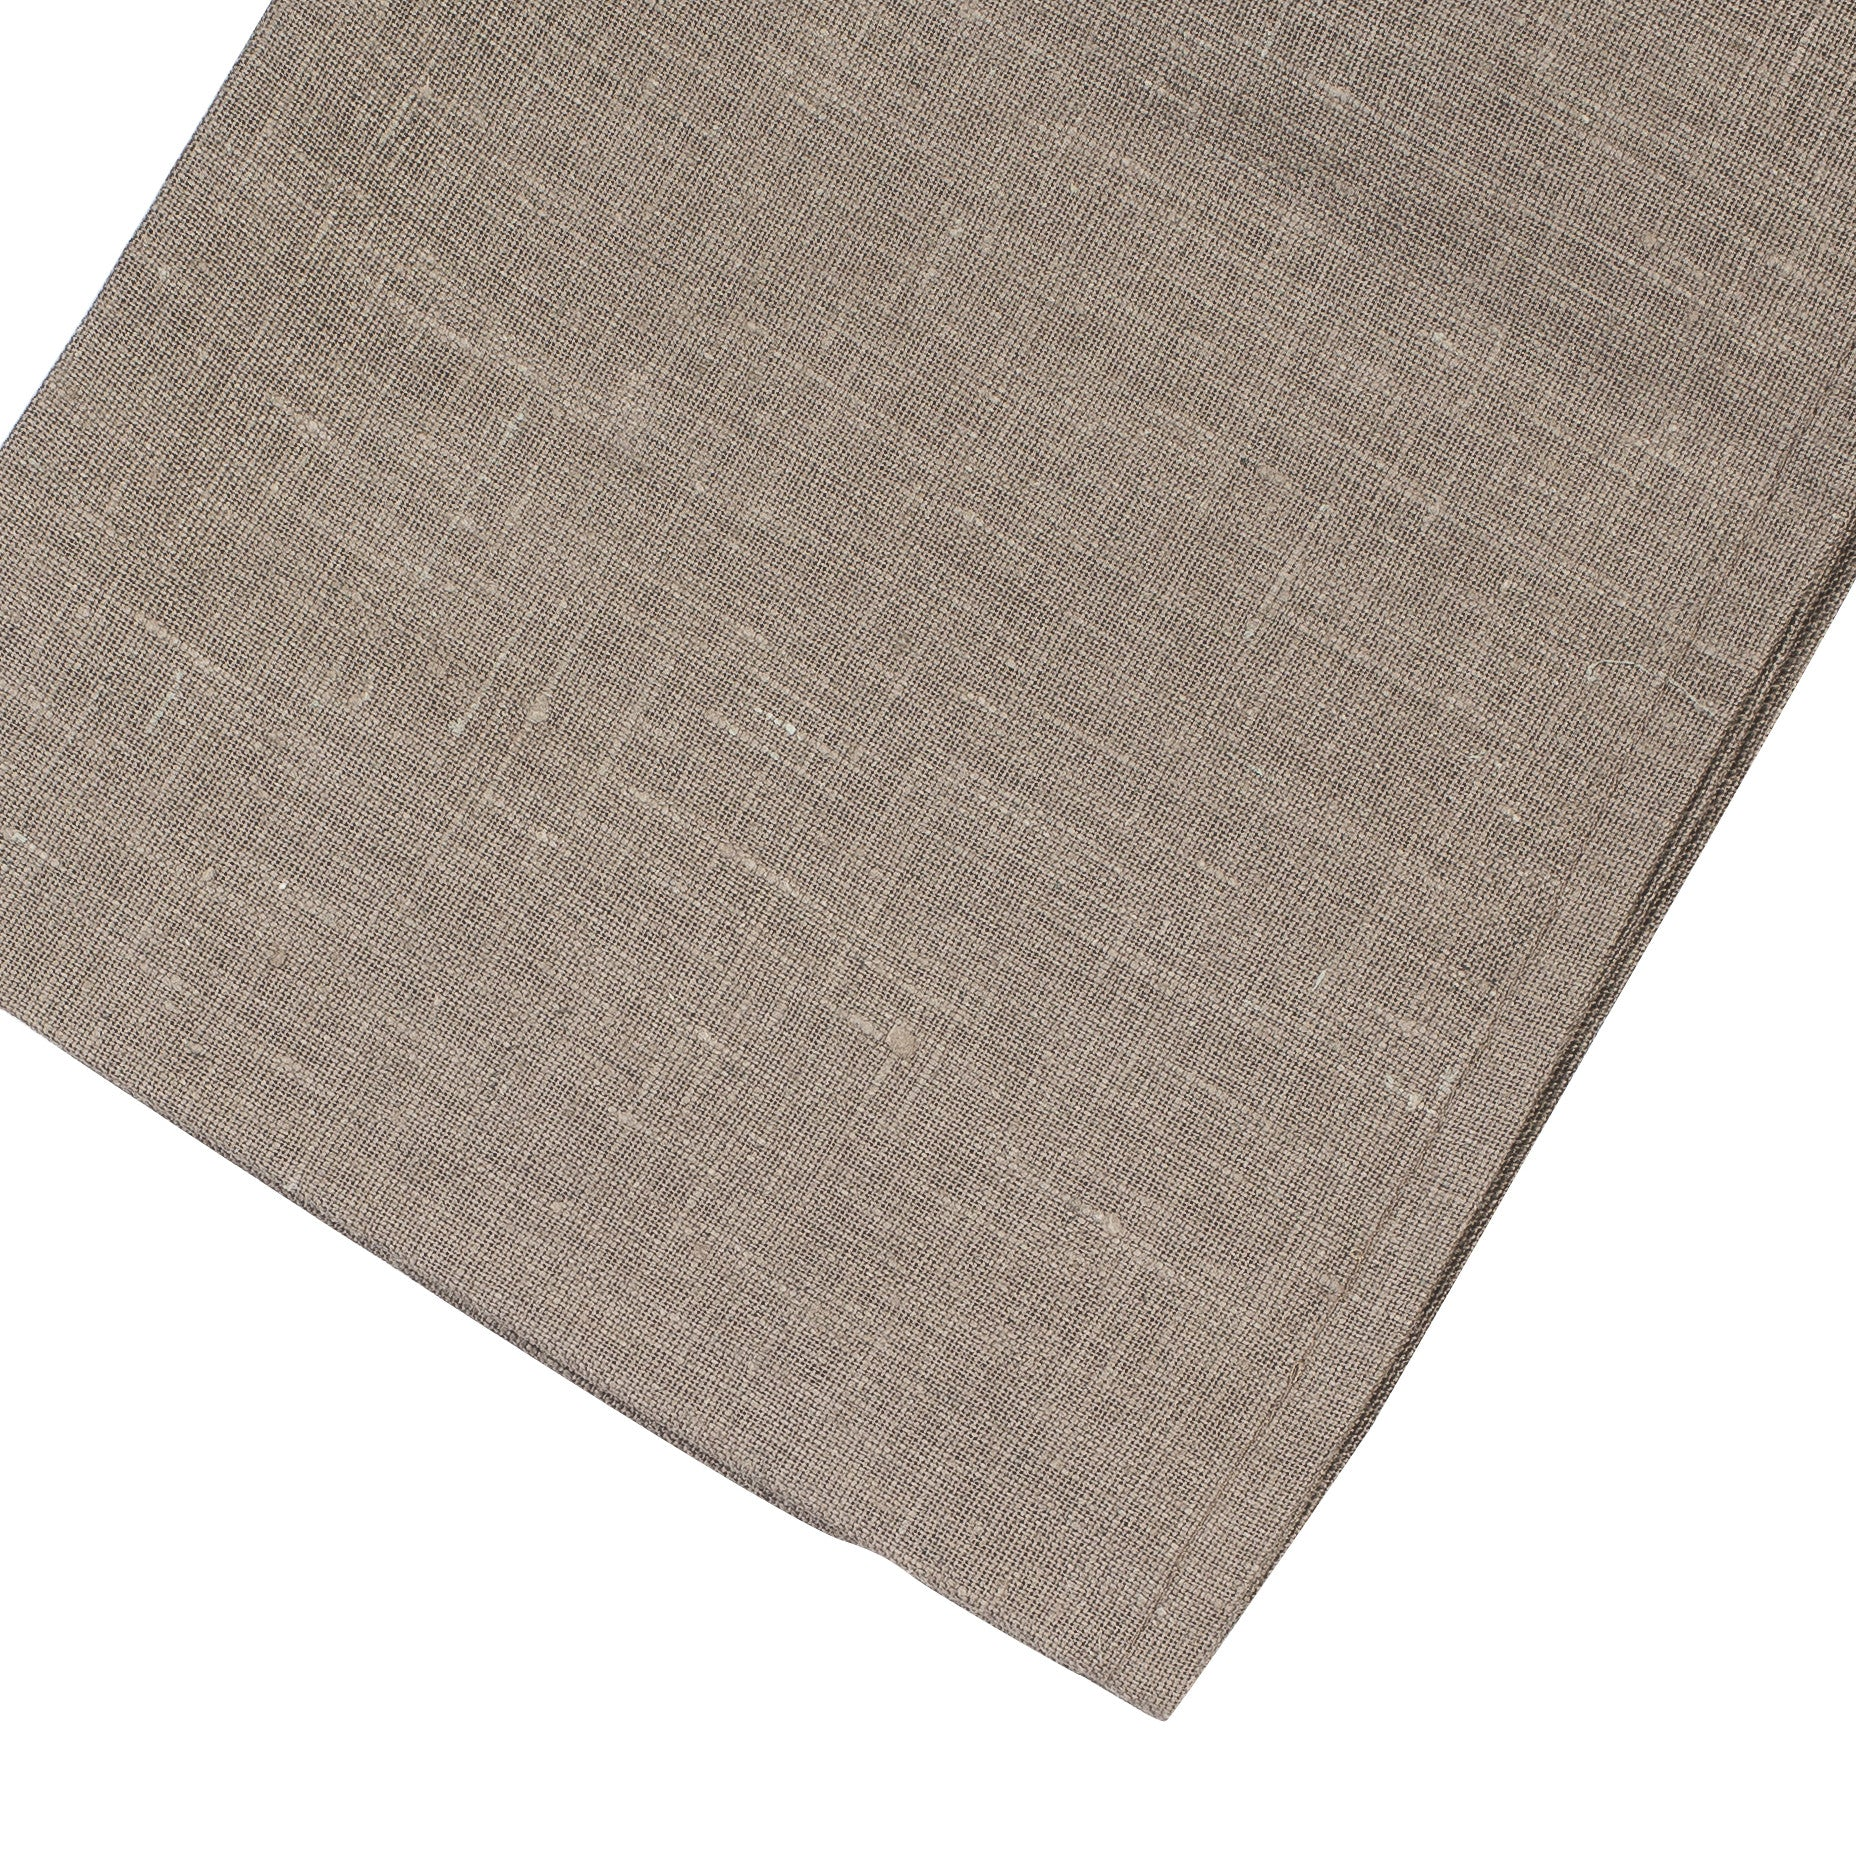 products/Brown_linen_towel.jpg